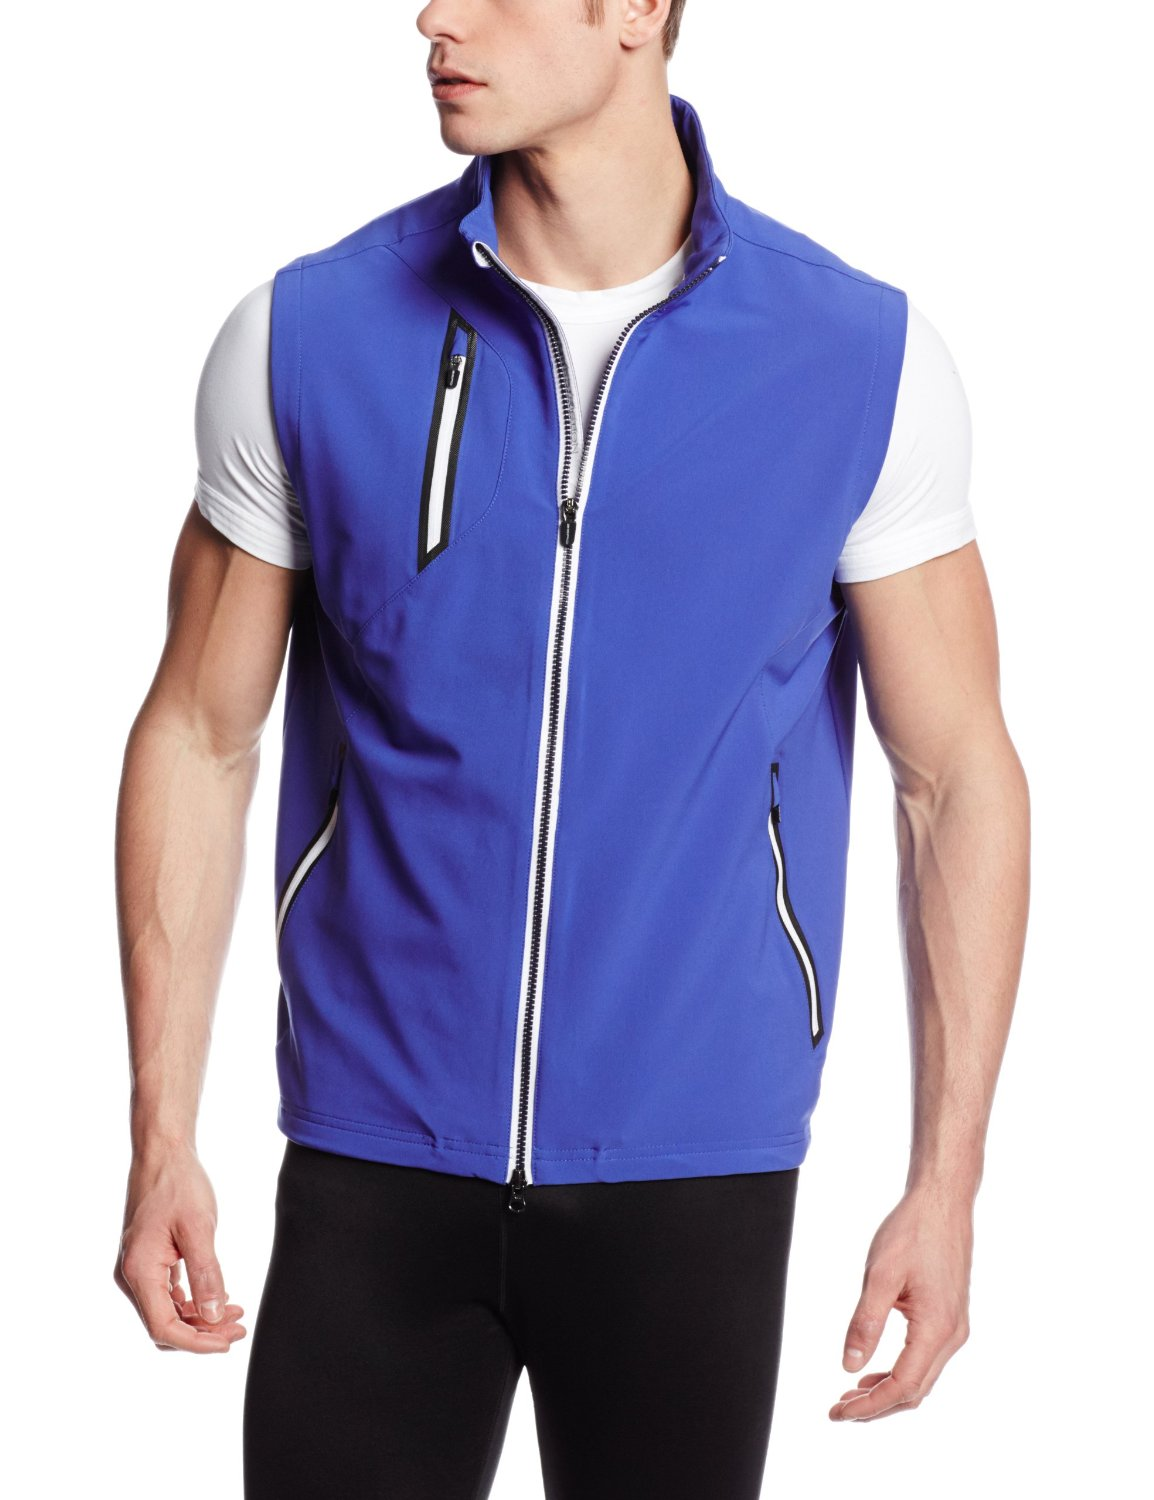 Buy Zero Restriction Mens Golf Vests for Best Prices Online!